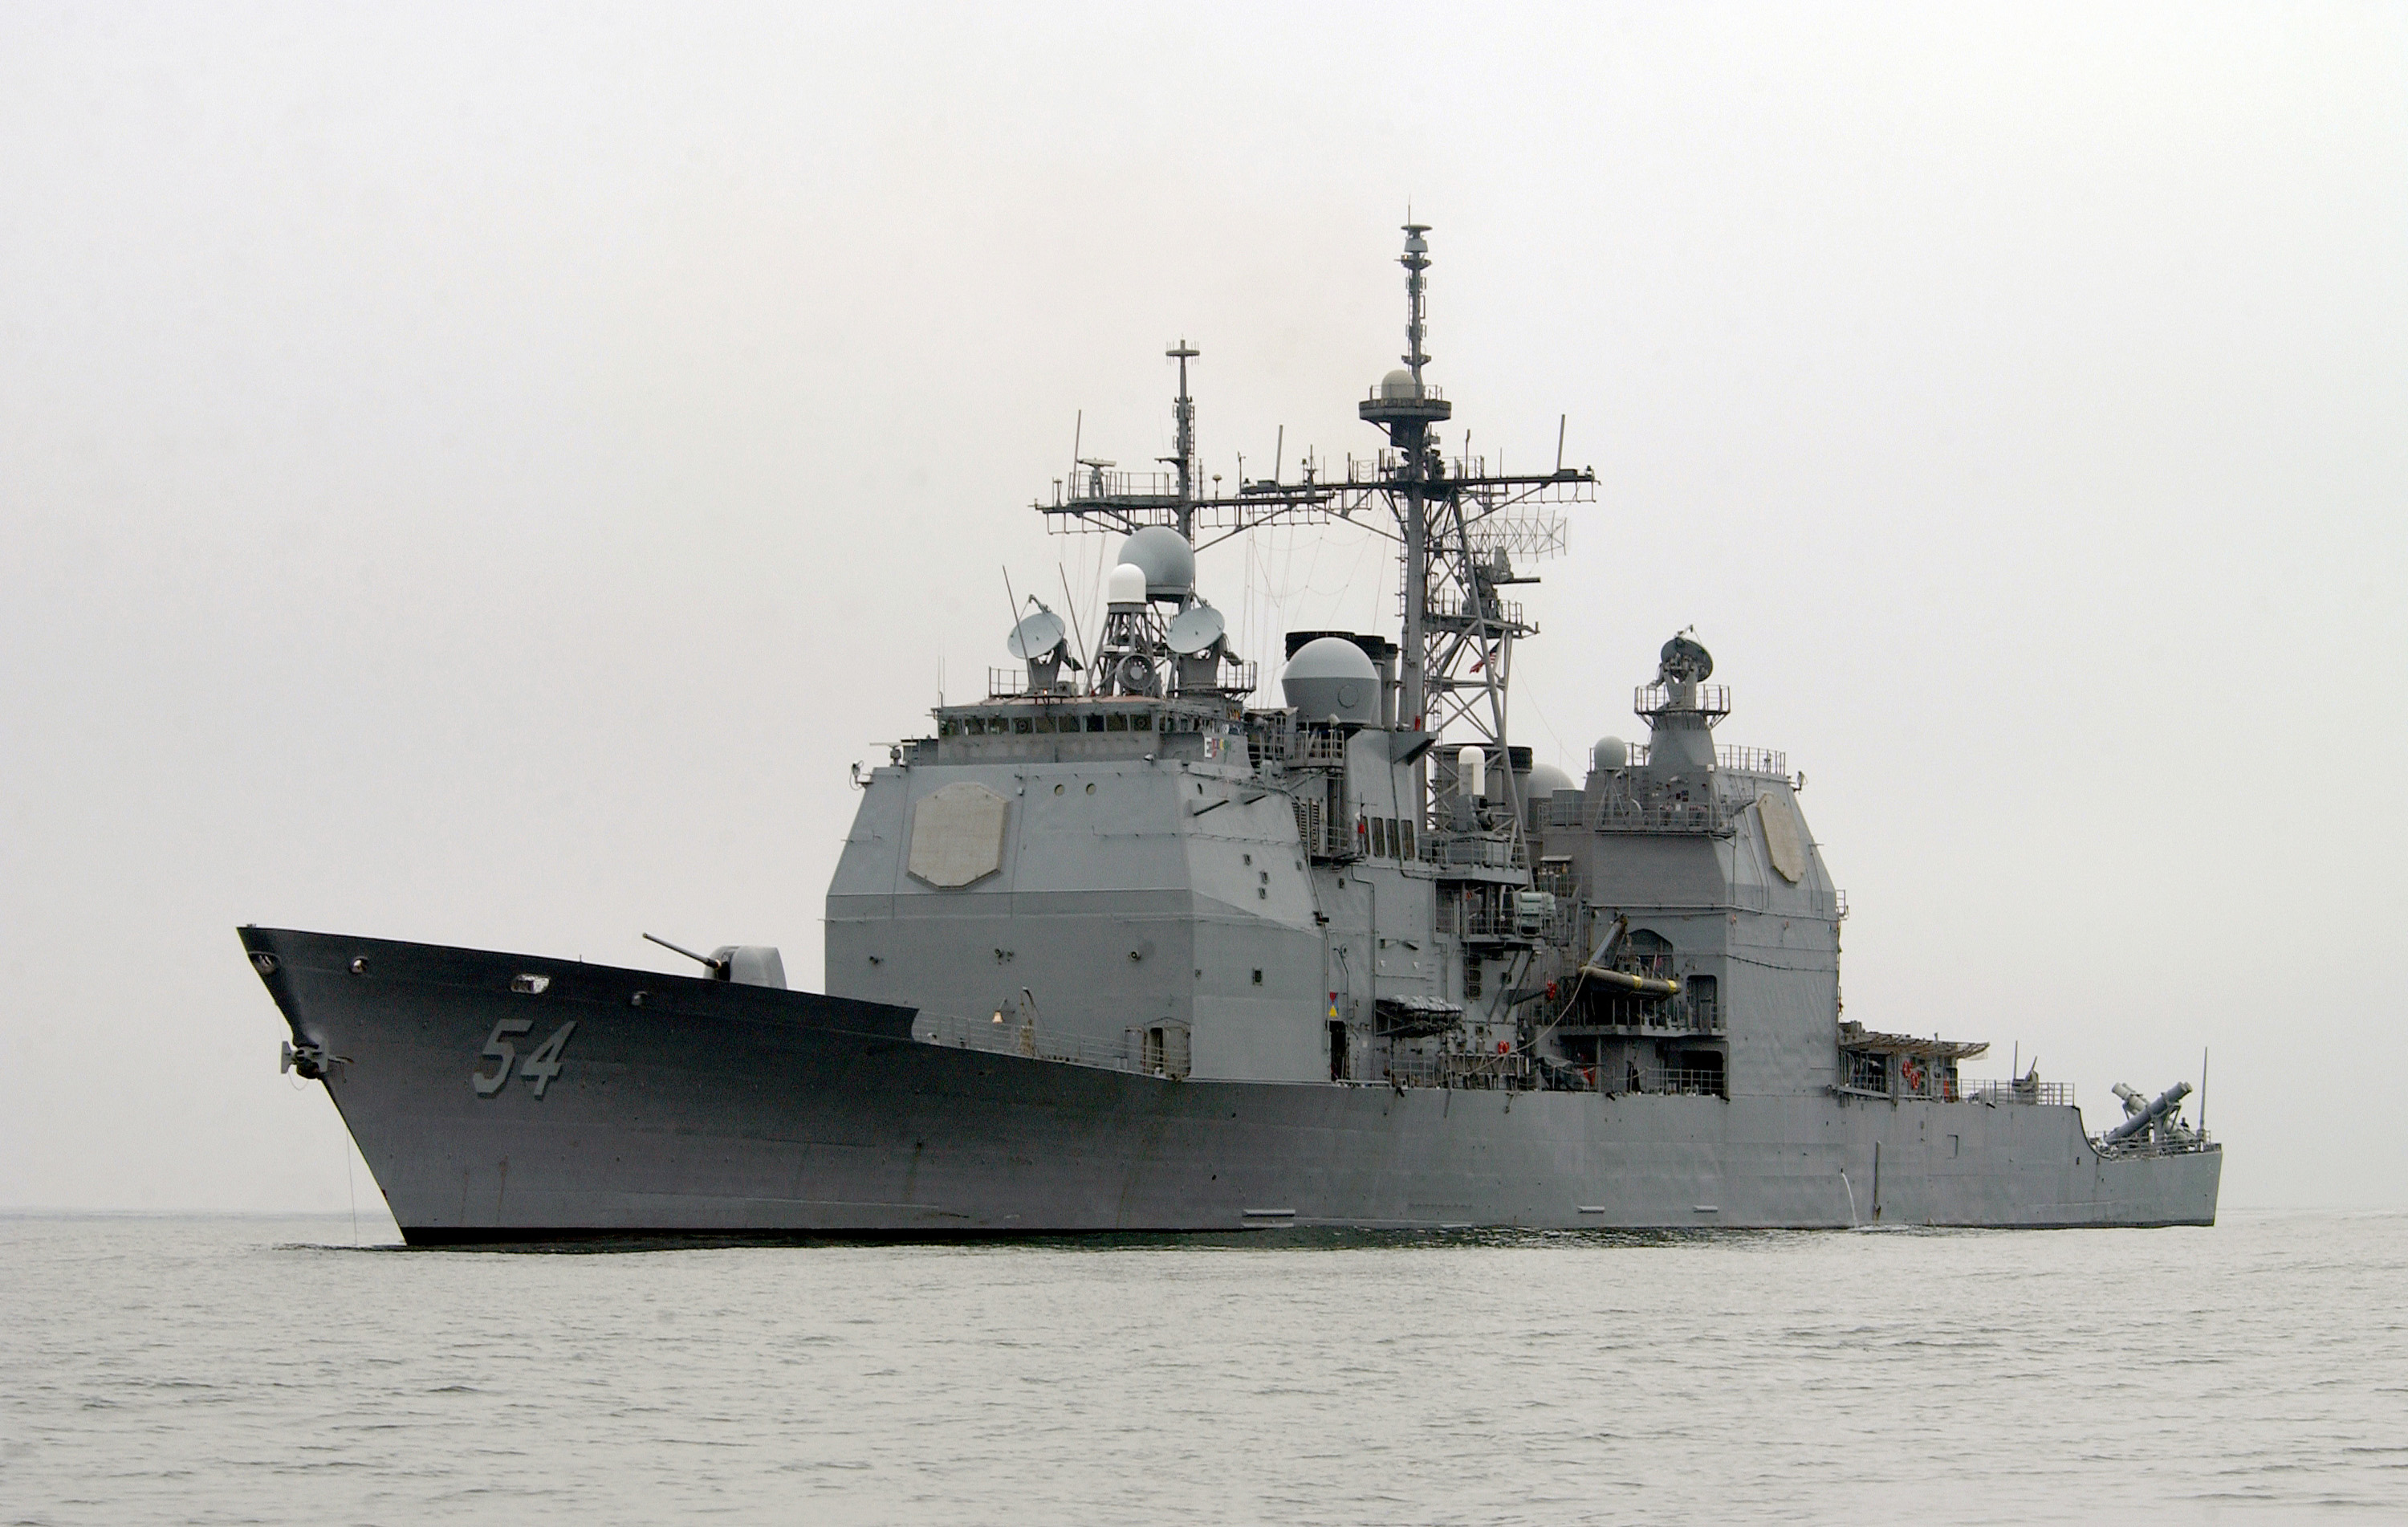 https://upload.wikimedia.org/wikipedia/commons/a/aa/USS_Antietam_(CG-54)_underway_2004.jpg